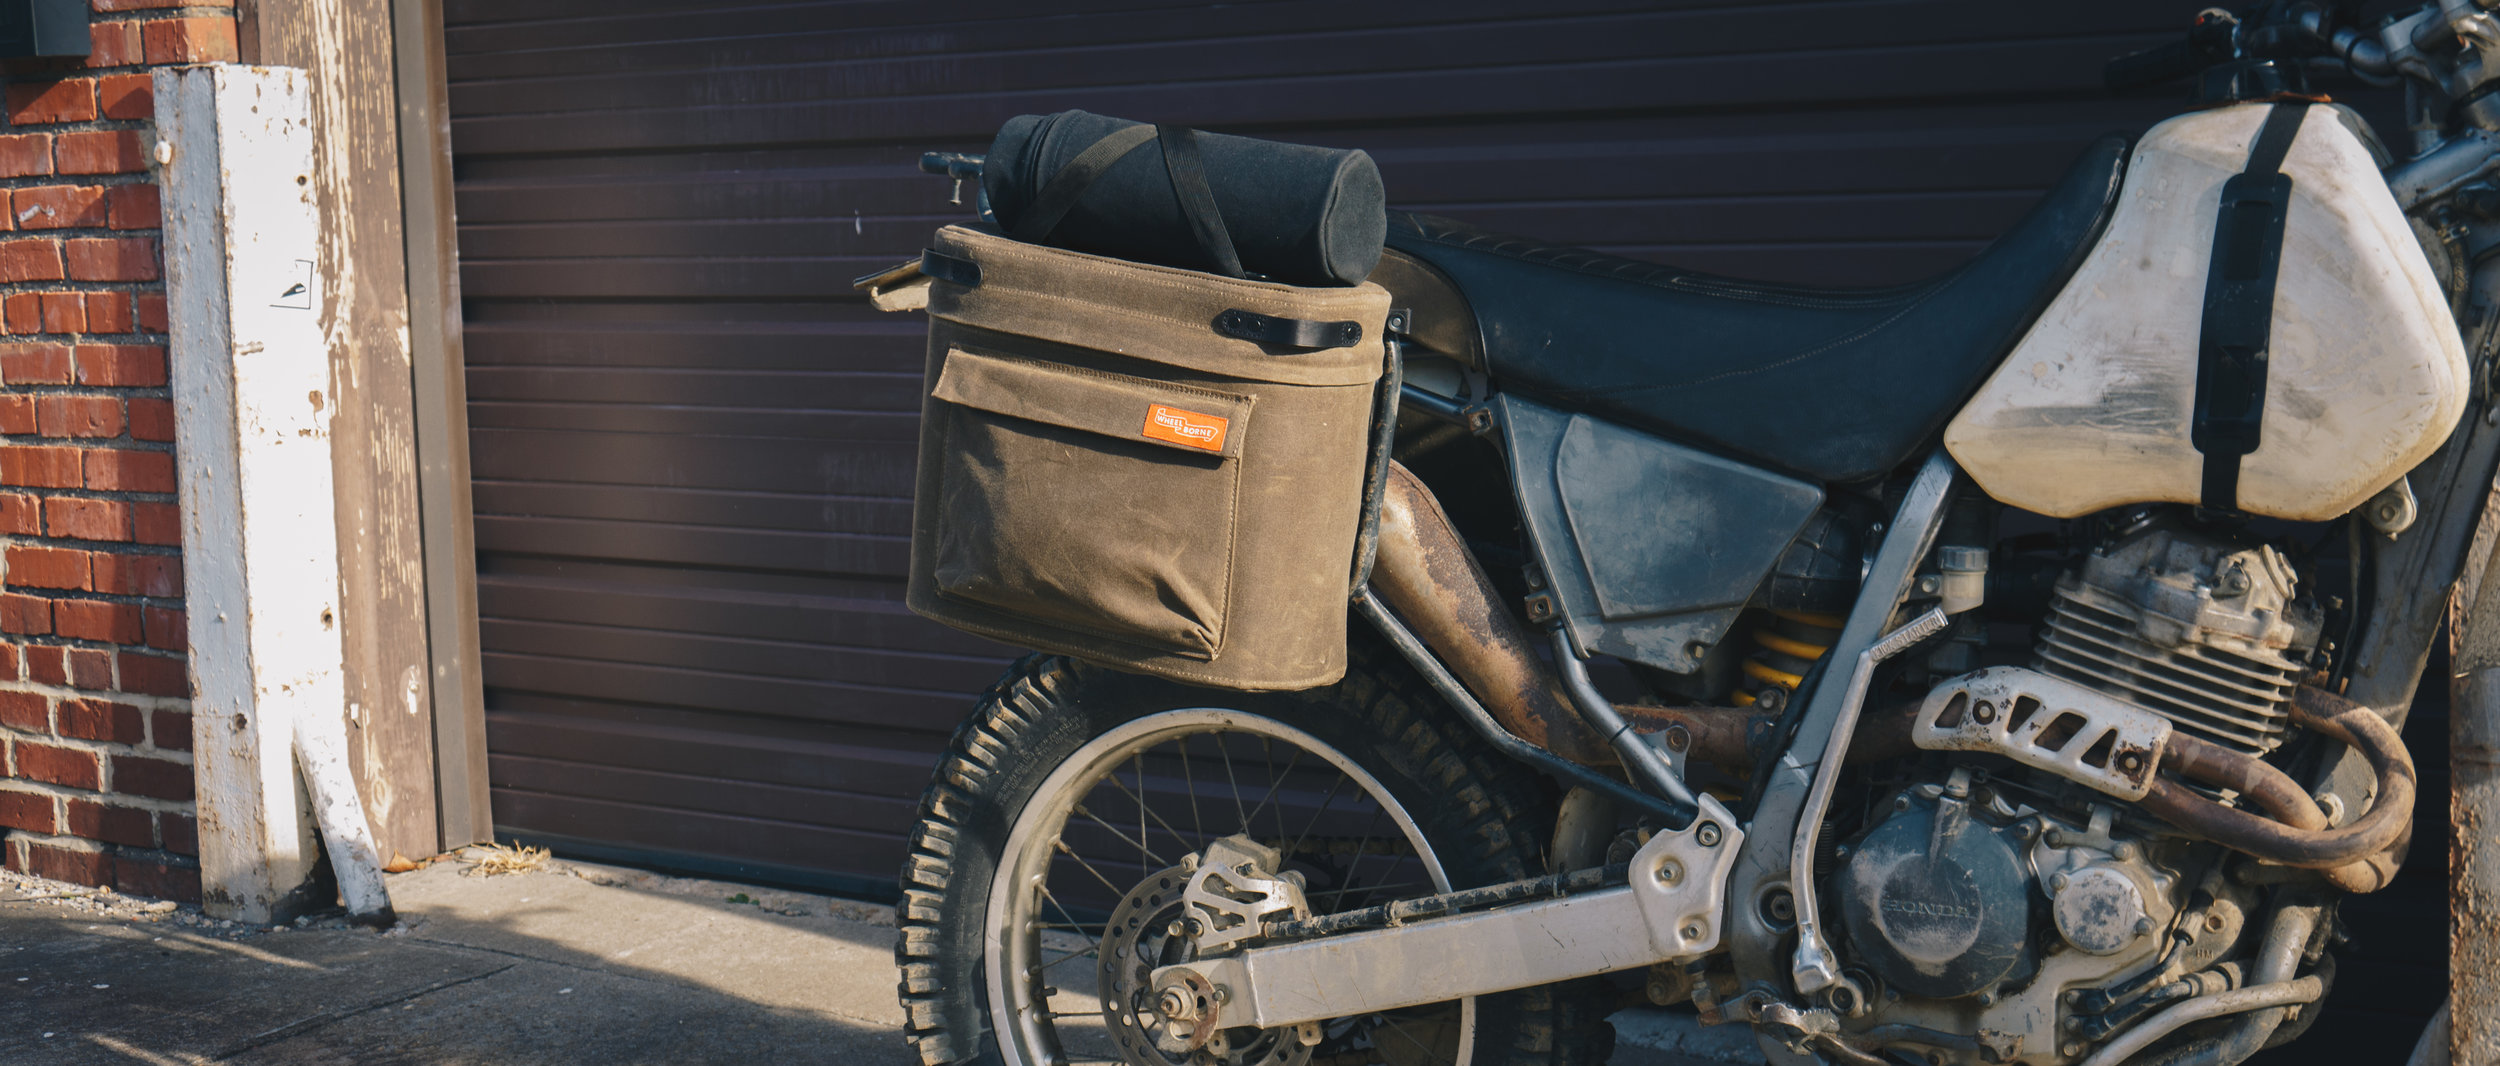 Mounts easily to our saddlebag using the gear/handle cinch (included with saddlebag).